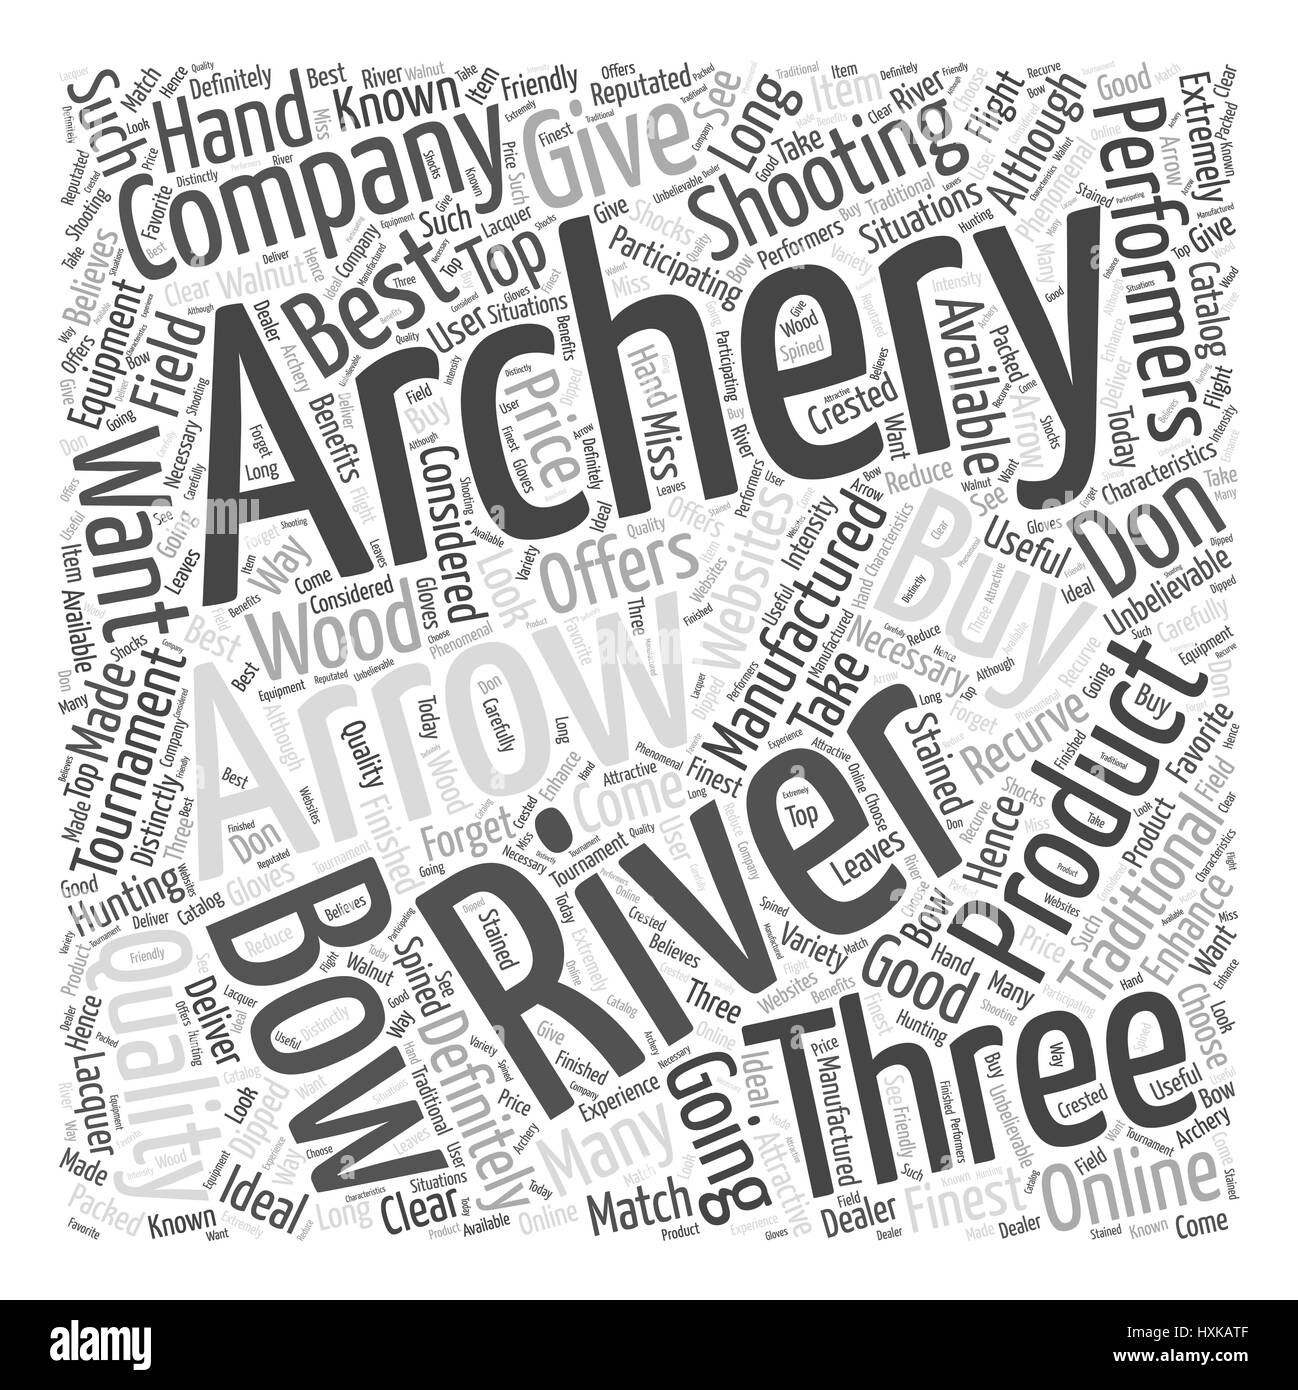 three rivers archery Word Cloud Concept - Stock Image